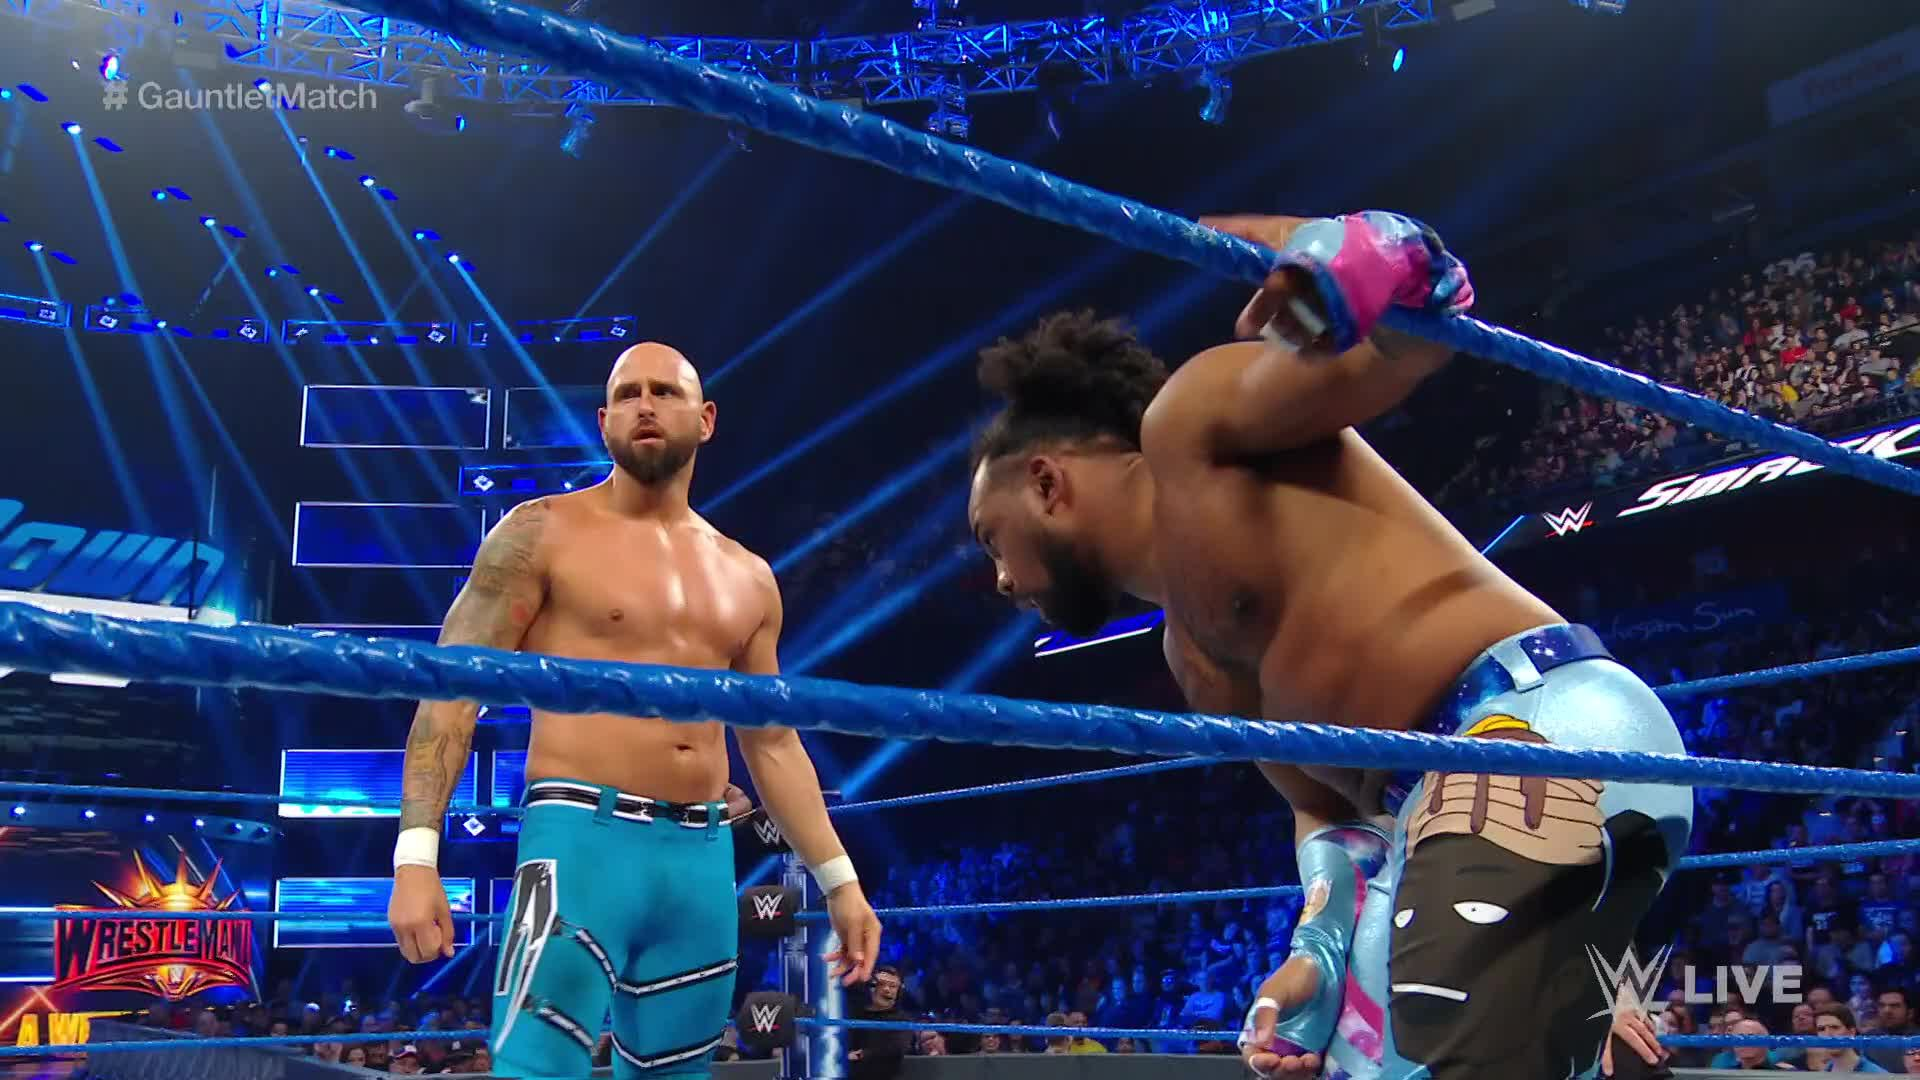 The New Day vs. Gallows & Anderson - Match Gauntlet Partie 1: SmackDown LIVE, 26 Mars 2019